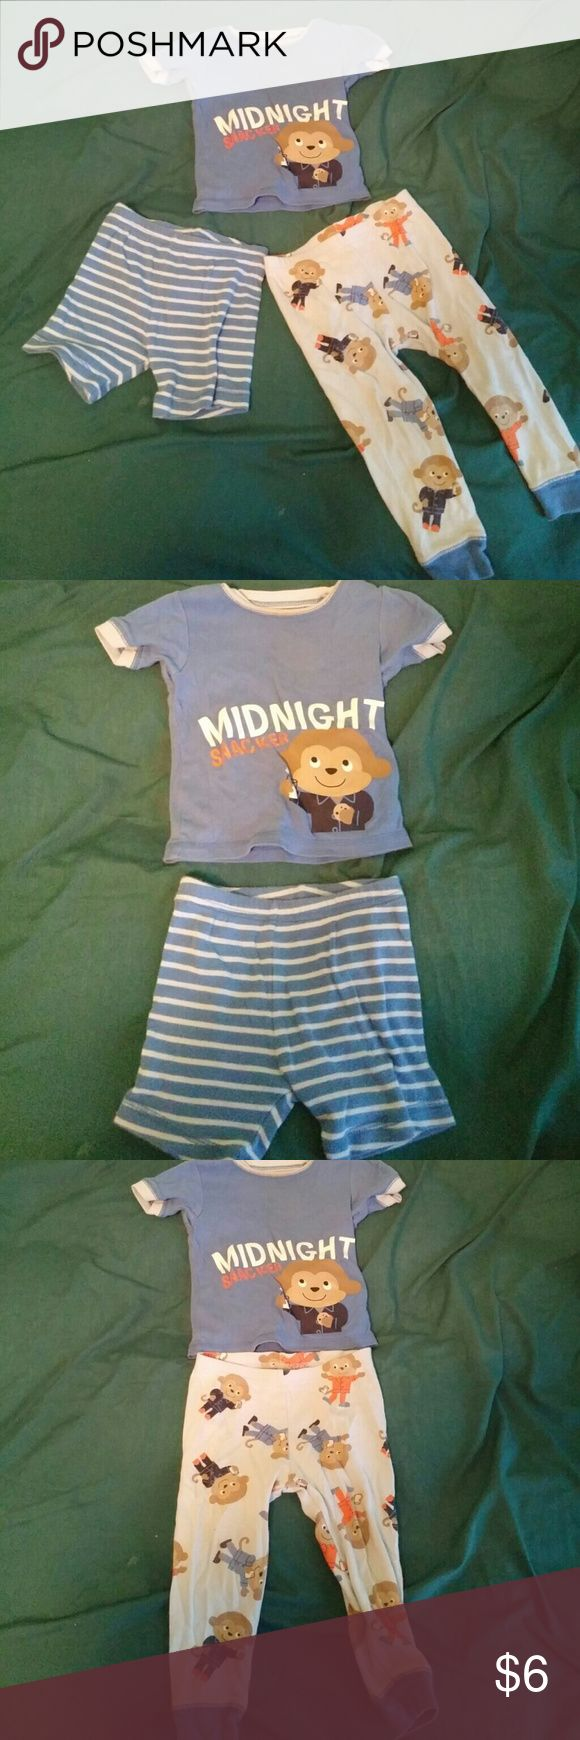 "3 piece pajama set This is a three piece pajama set. It has one top that says ""Midnight Snacker"" with a monkey holding a glass of milk and a cookie. There are two bottoms to this set. A pair of shorts with blue and light blue stripes. A pair of pants that are light blue with monkeys wearing pajamas and holding glasses of milk. Carter's Pajamas Pajama Sets"